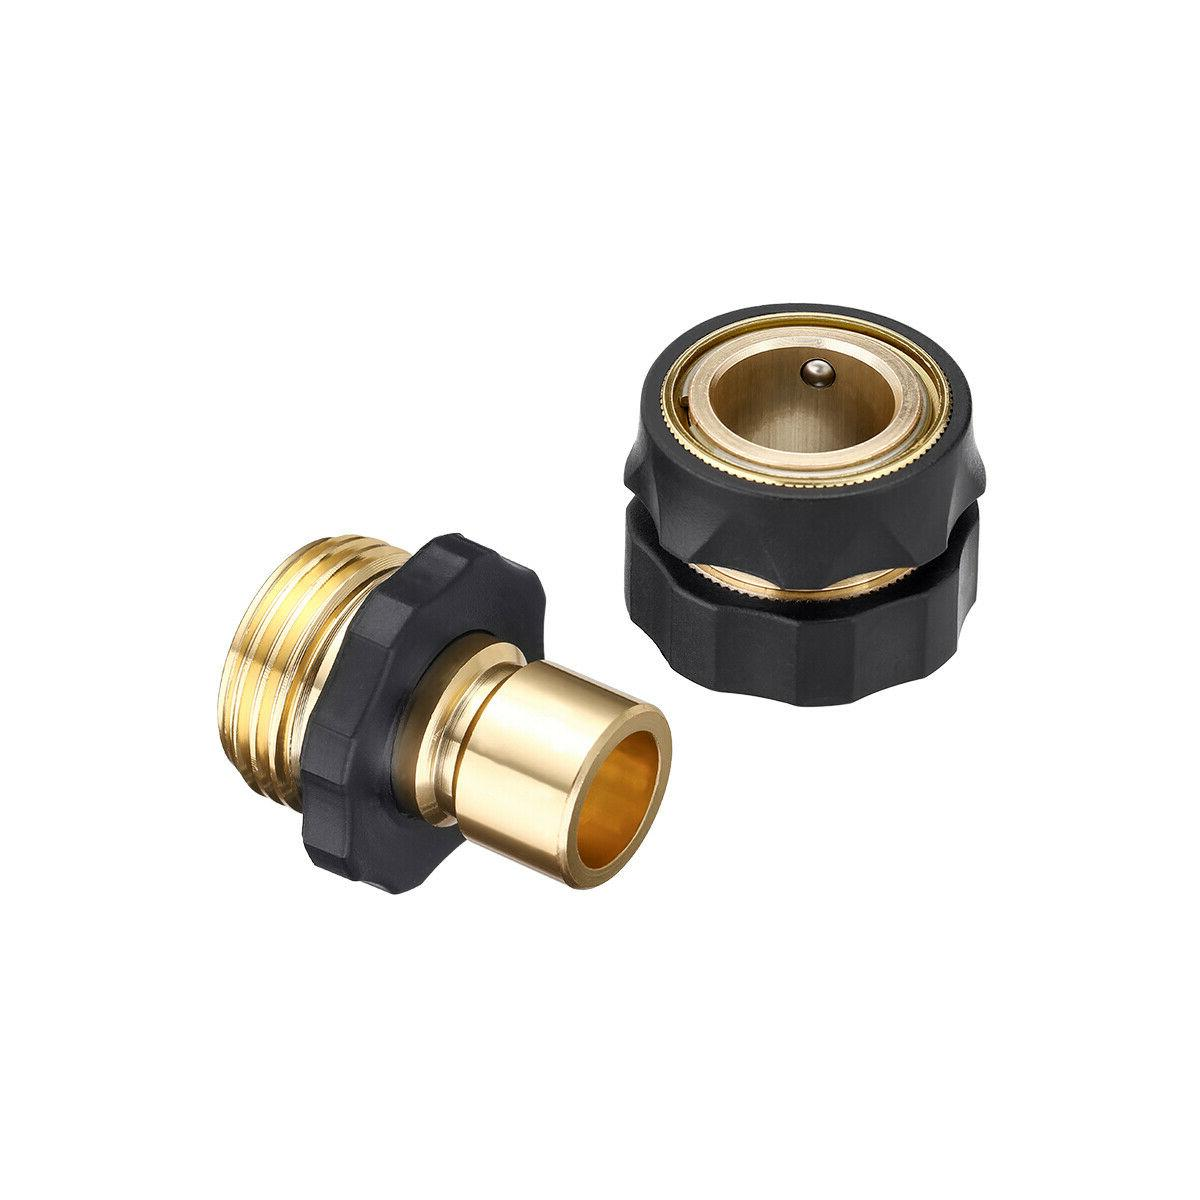 4 Garden Quick Connect Water Hose Fit Brass Connector Set